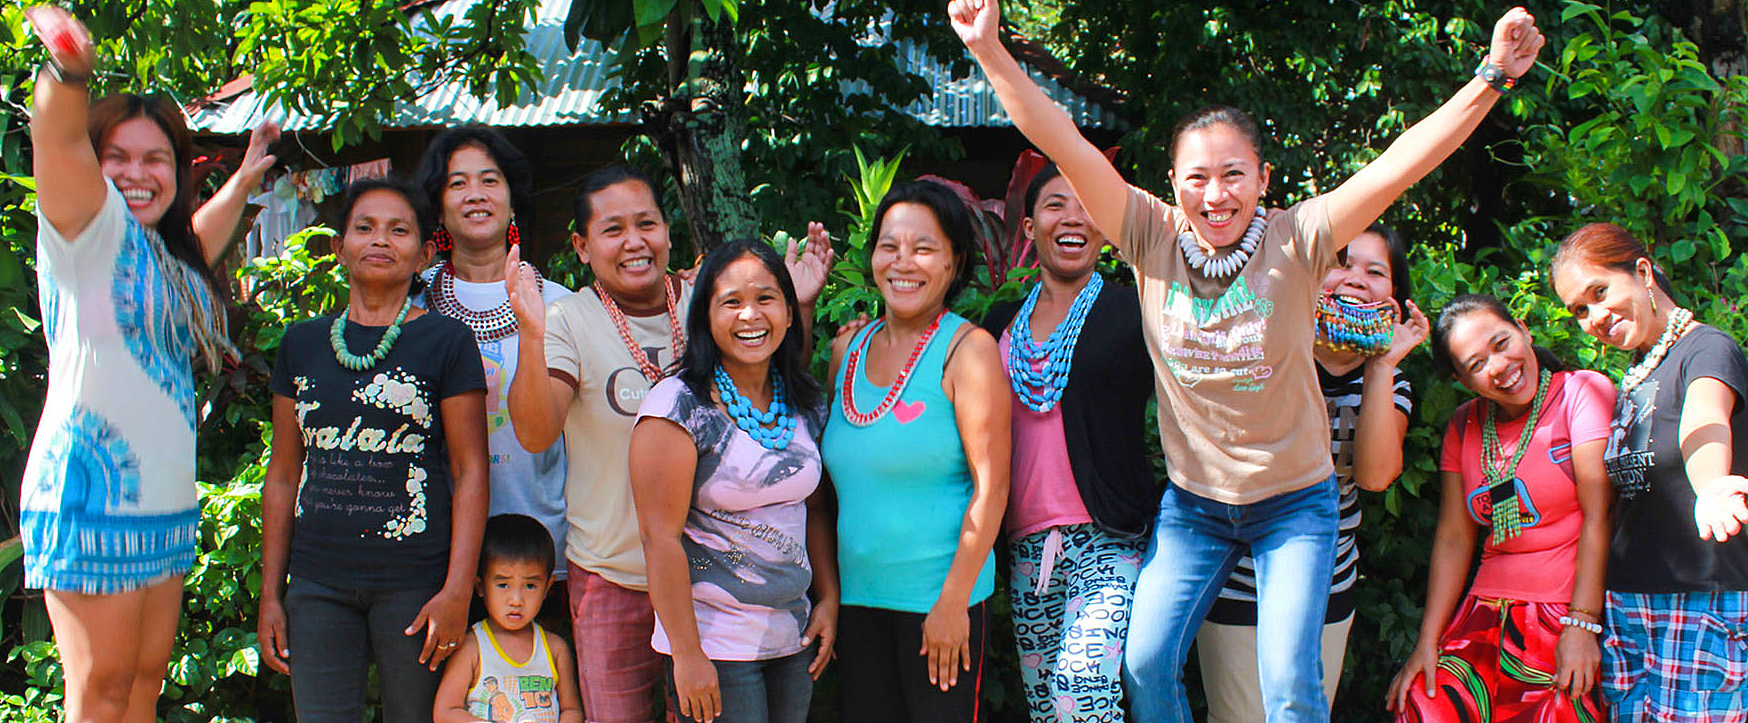 The ladies of Lumago in Dumaguete Philippines showcase their own upcycled paper jewlery